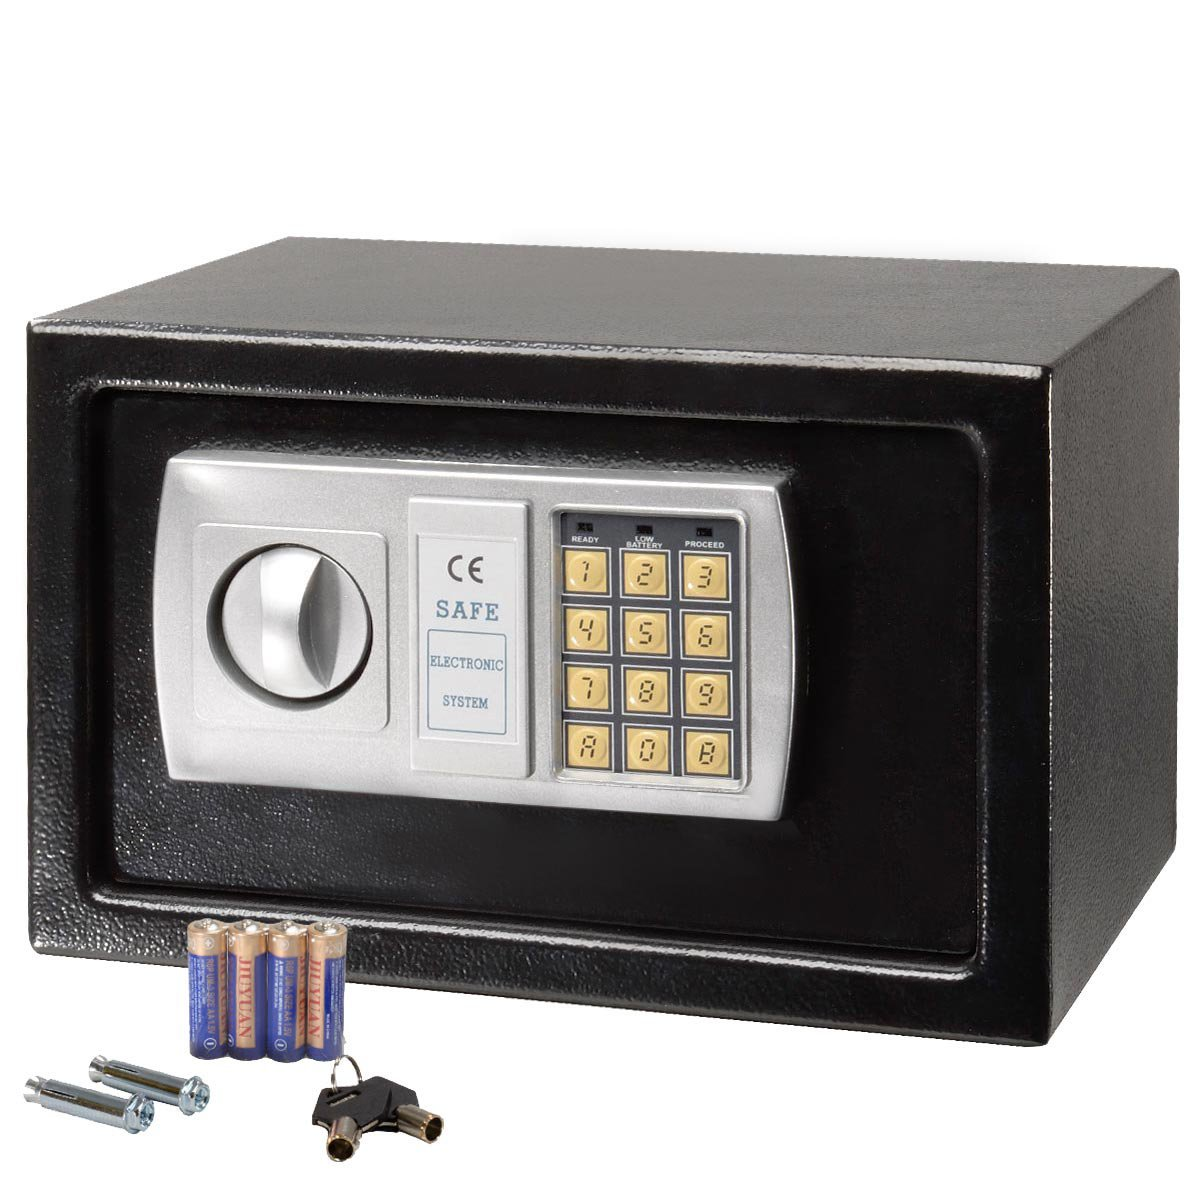 12 5 electronic digital lock keypad safe box cash jewelry gun safe black new. Black Bedroom Furniture Sets. Home Design Ideas